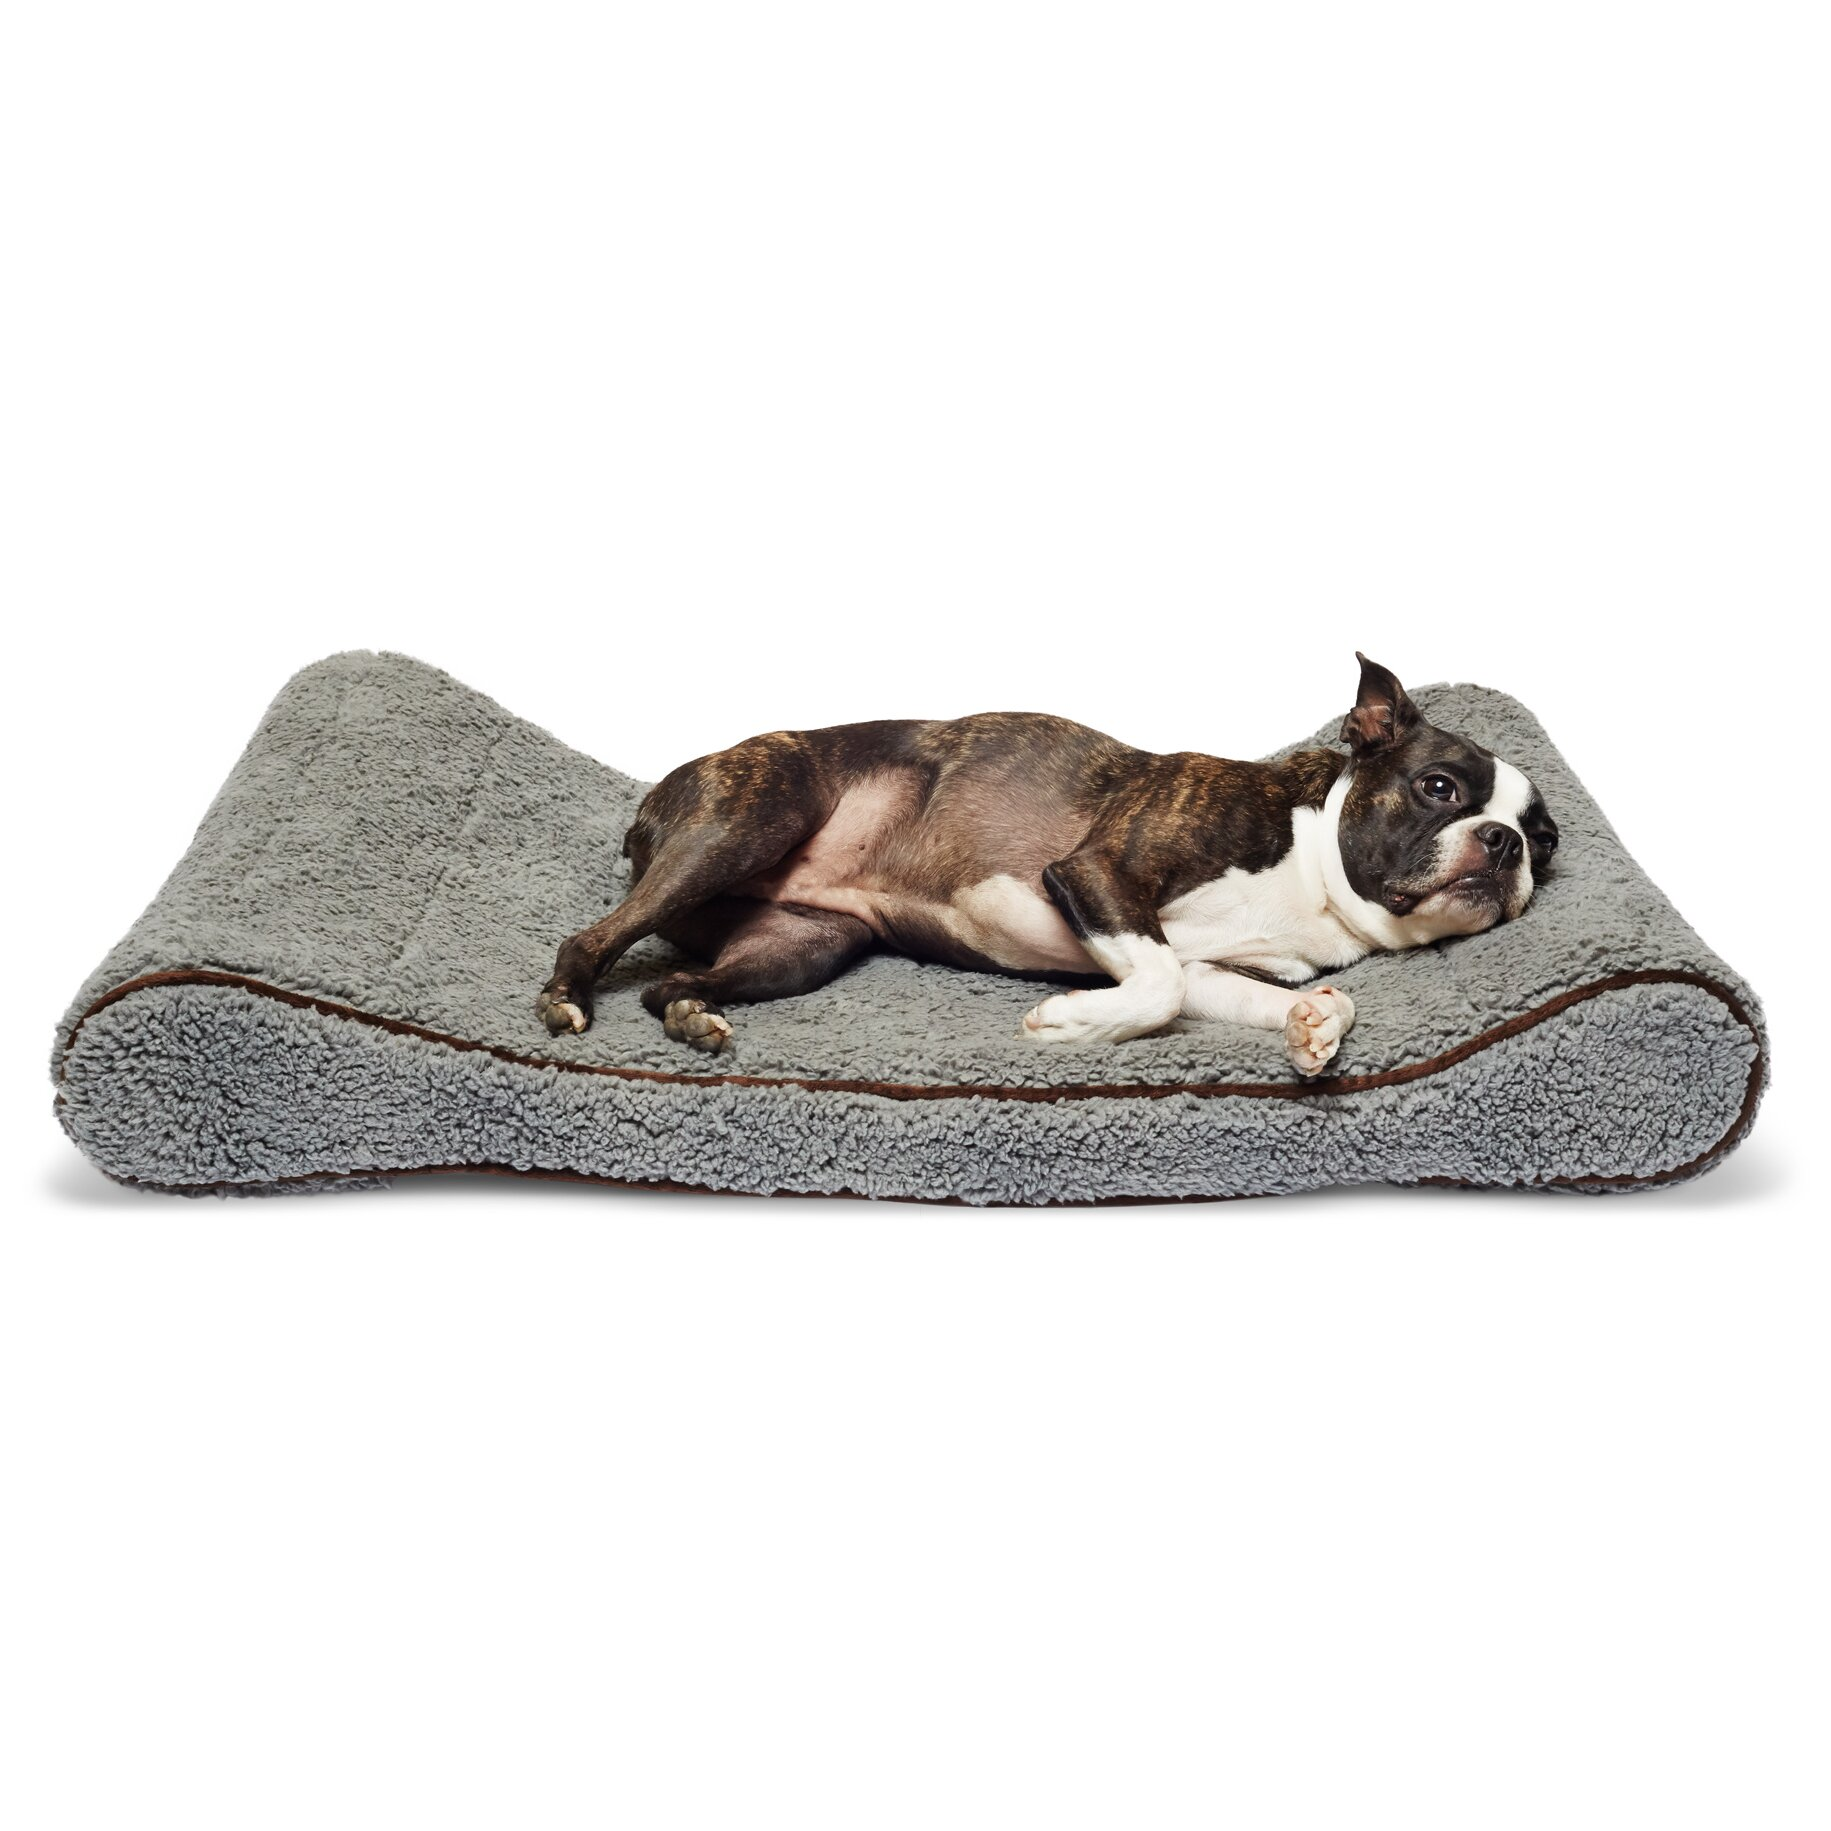 Best bathroom fans - Sherpa Top Memory Foam Orthopedic Contoured Lounger Bolster Dog Bed By